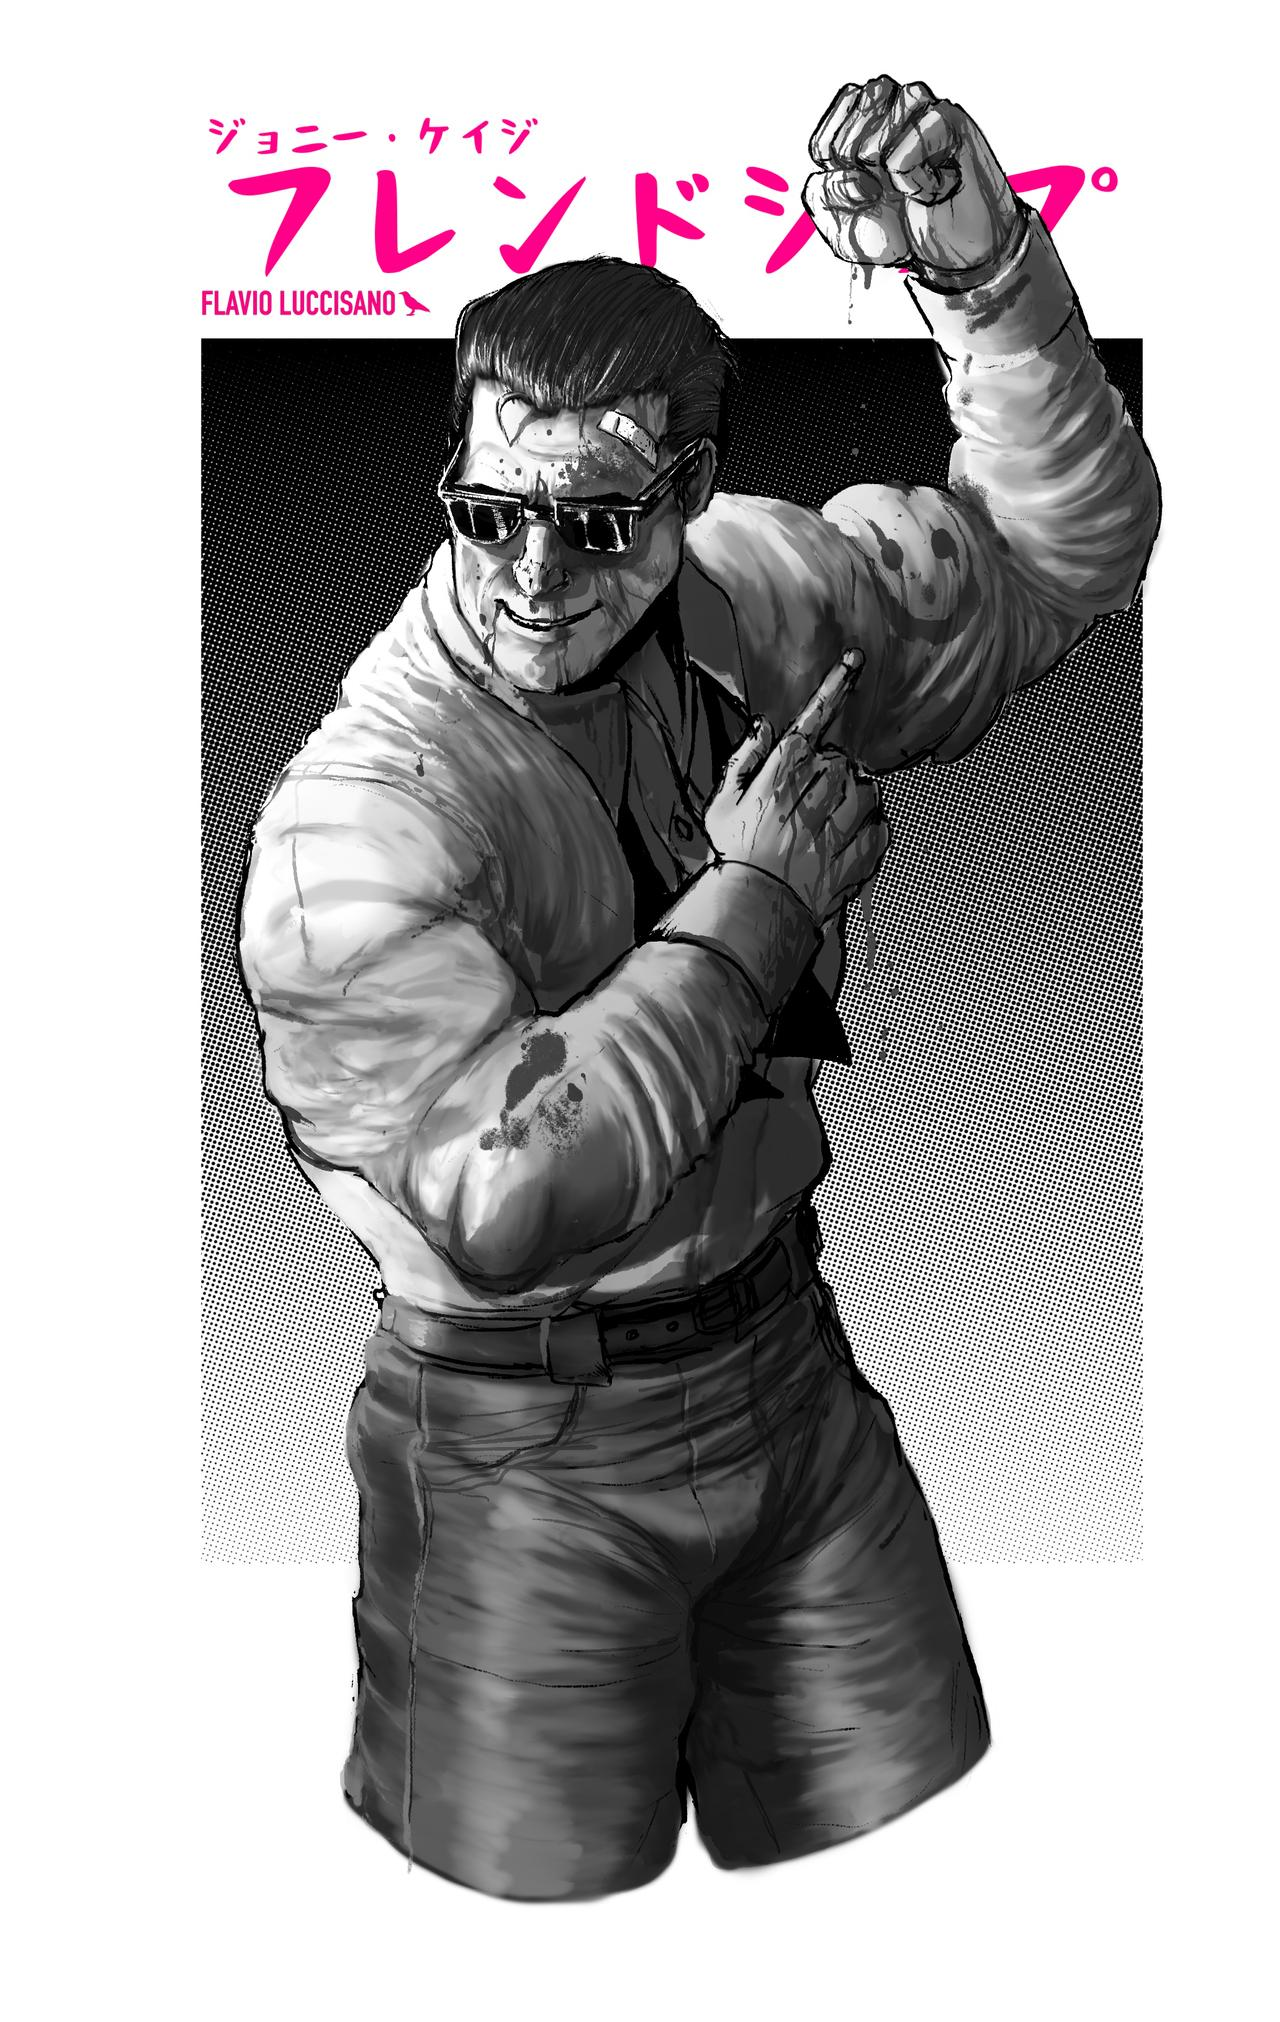 johnny_cage_by_flavioluccisano_ddu8mn0-f